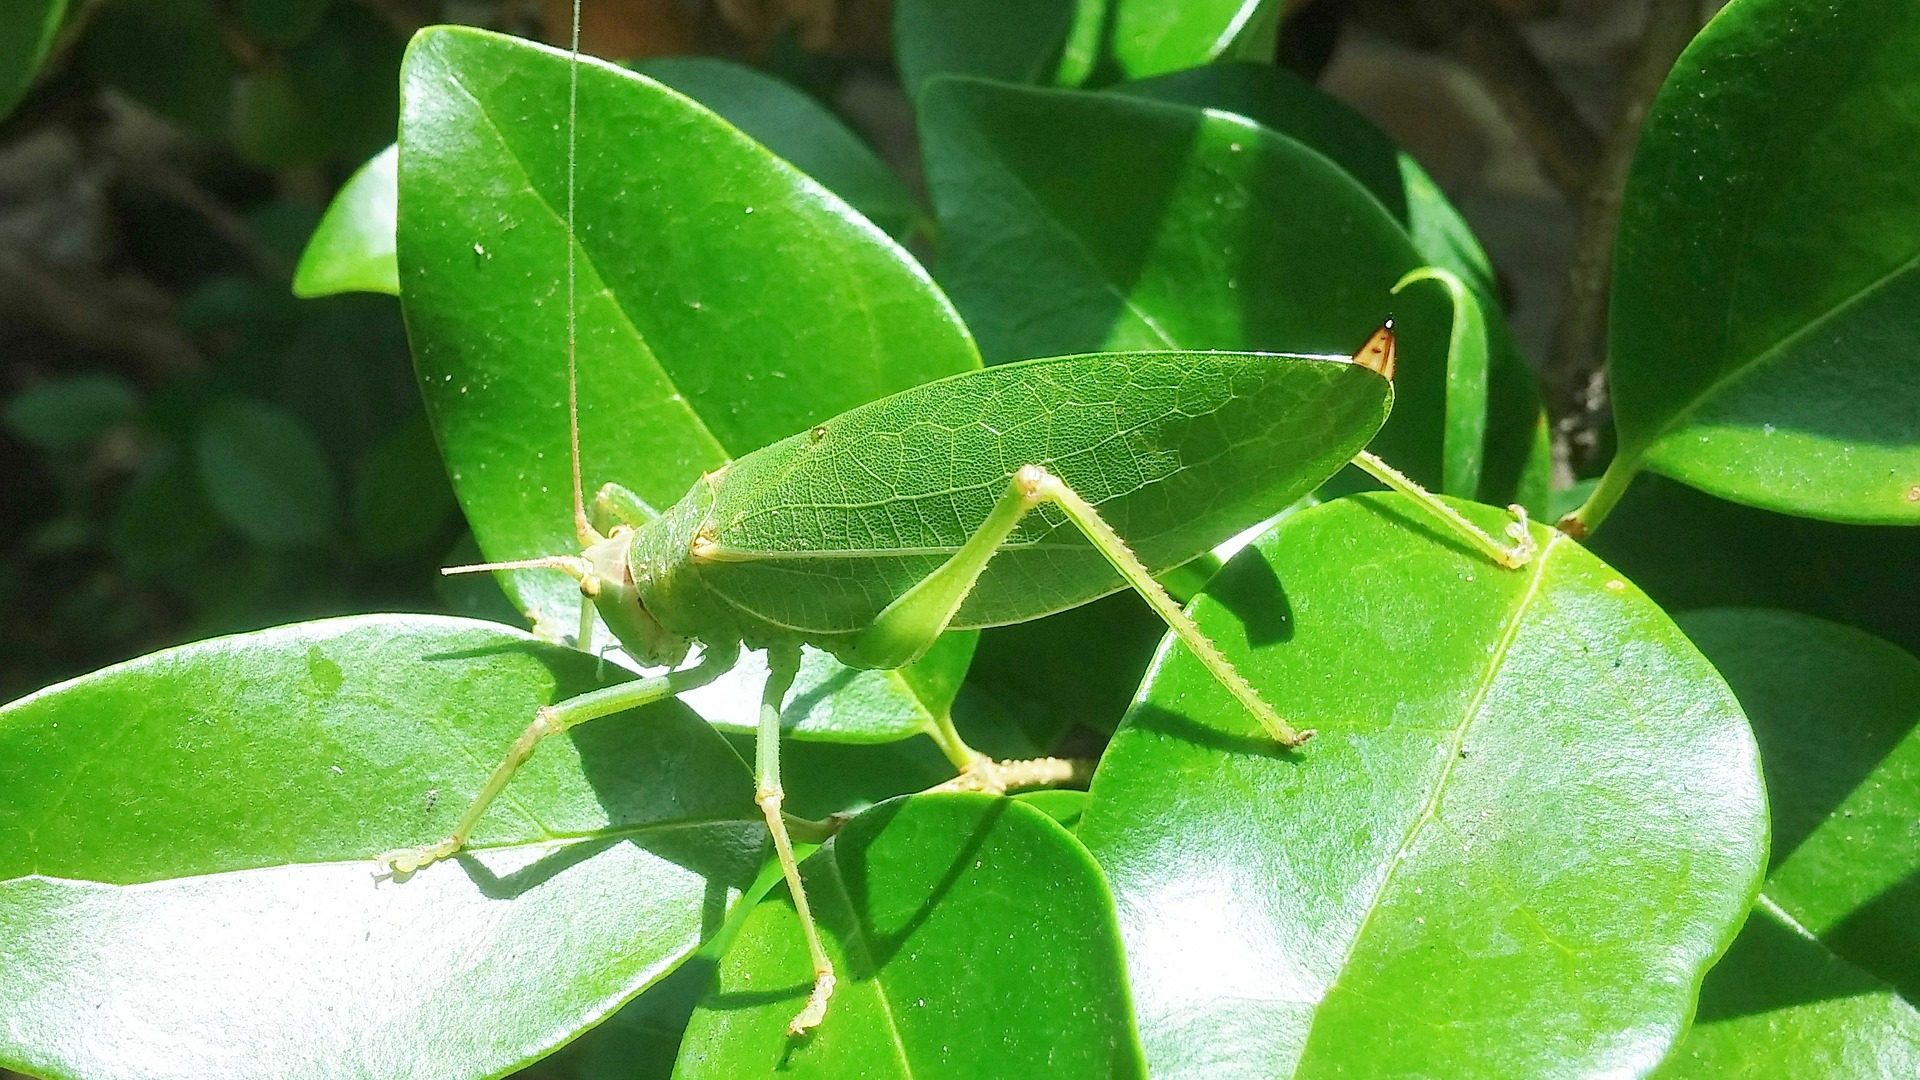 The Amazing Insects Using Mimicry To Survive